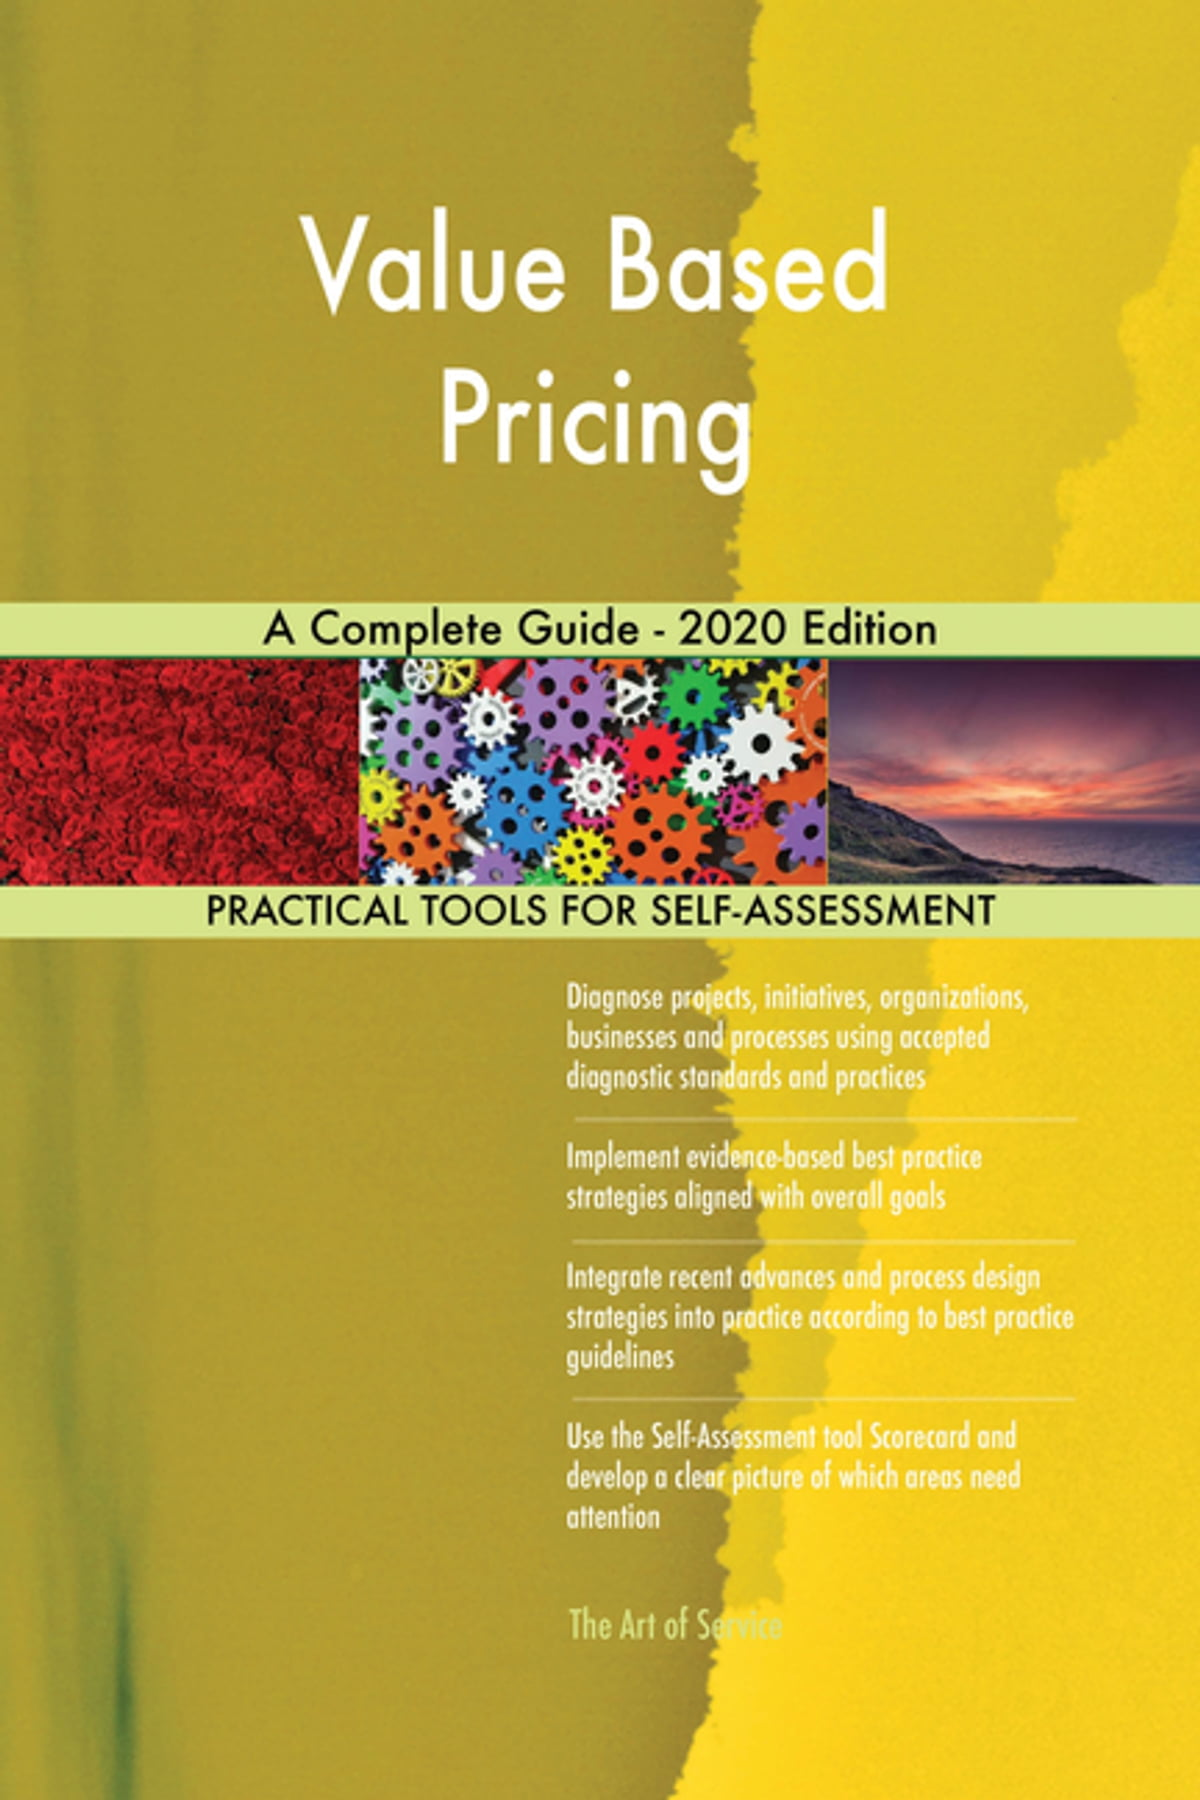 Value Based Pricing A Complete Guide